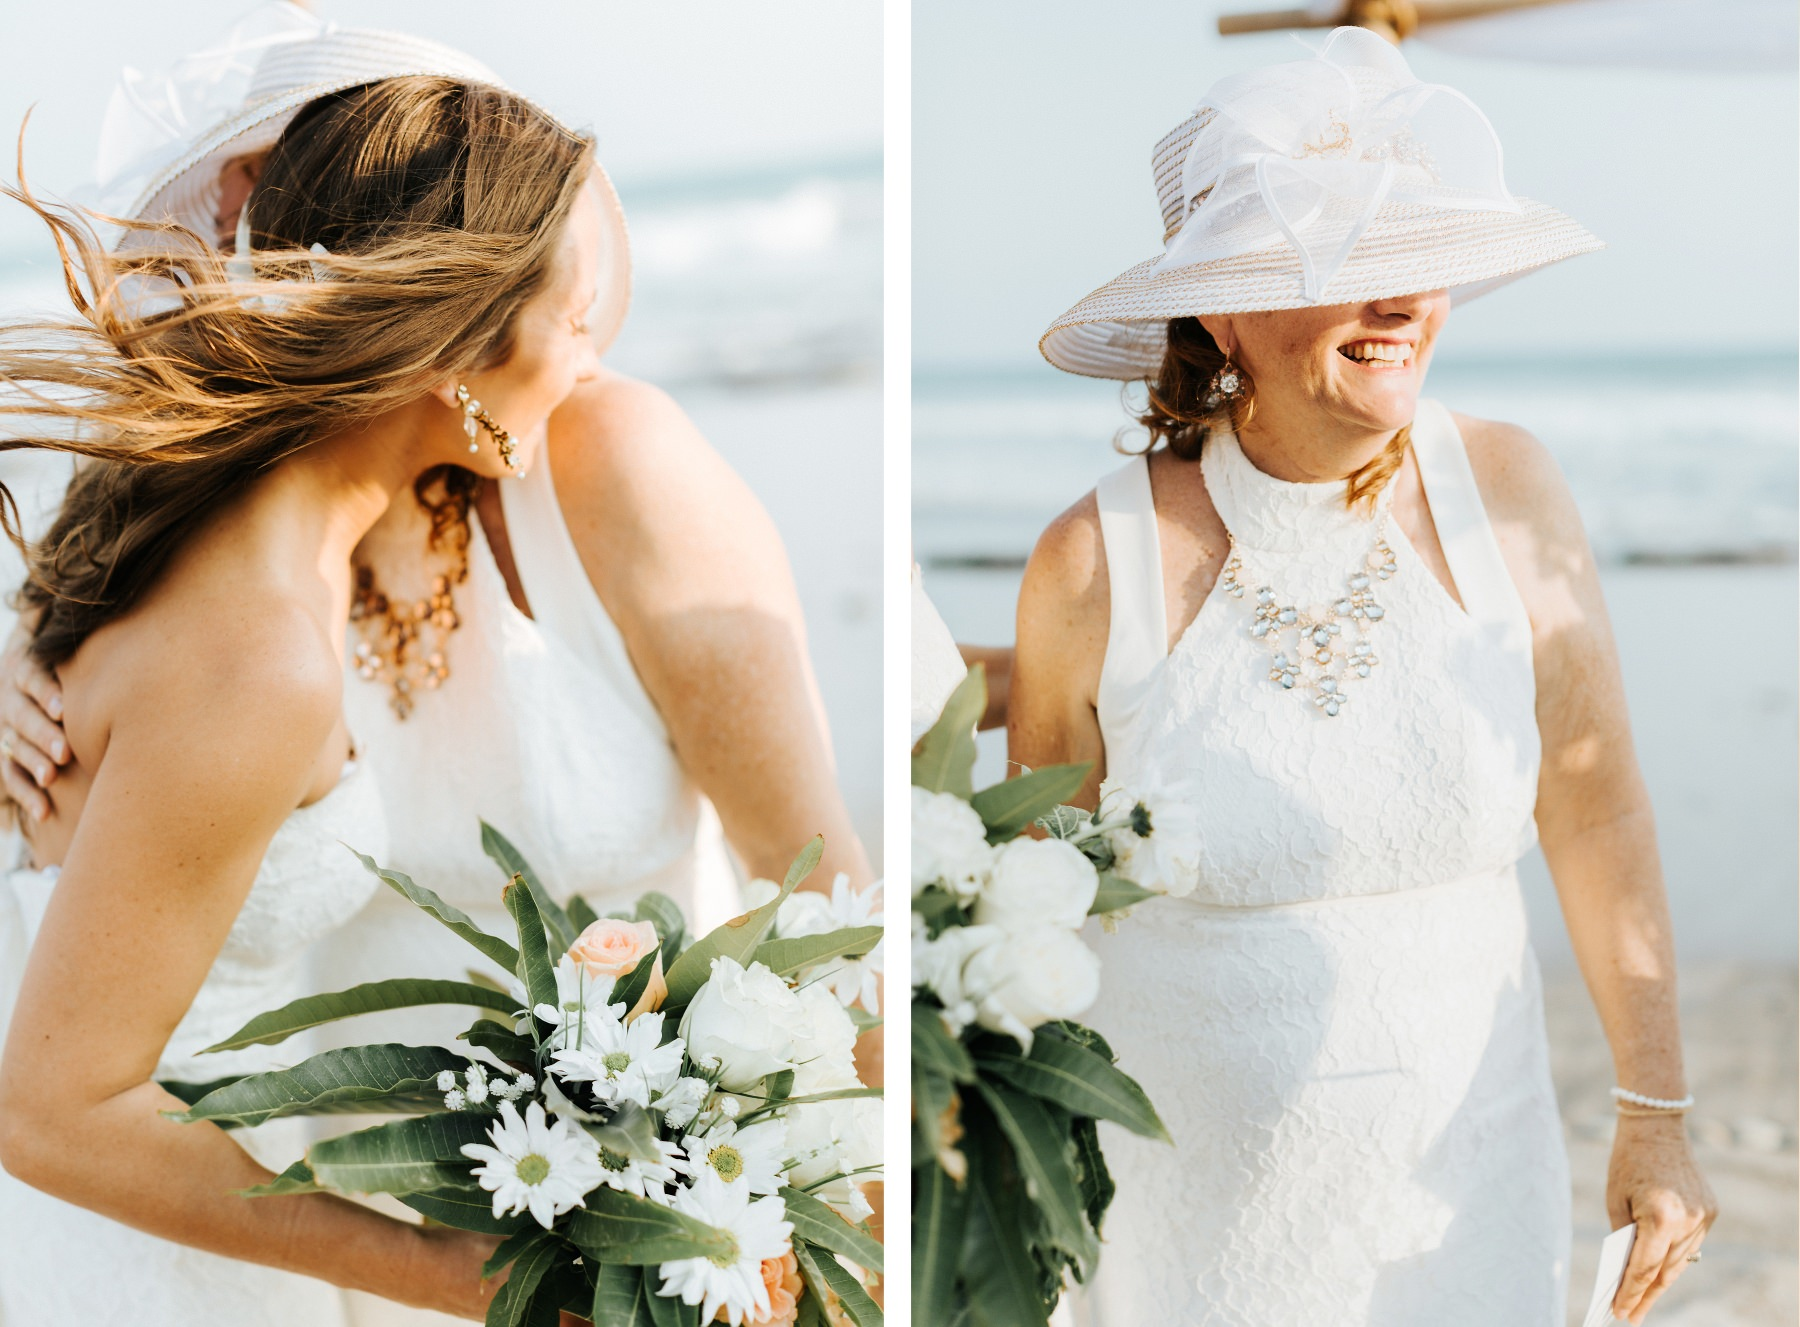 Costa Rica beach wedding dress inspiration for mother